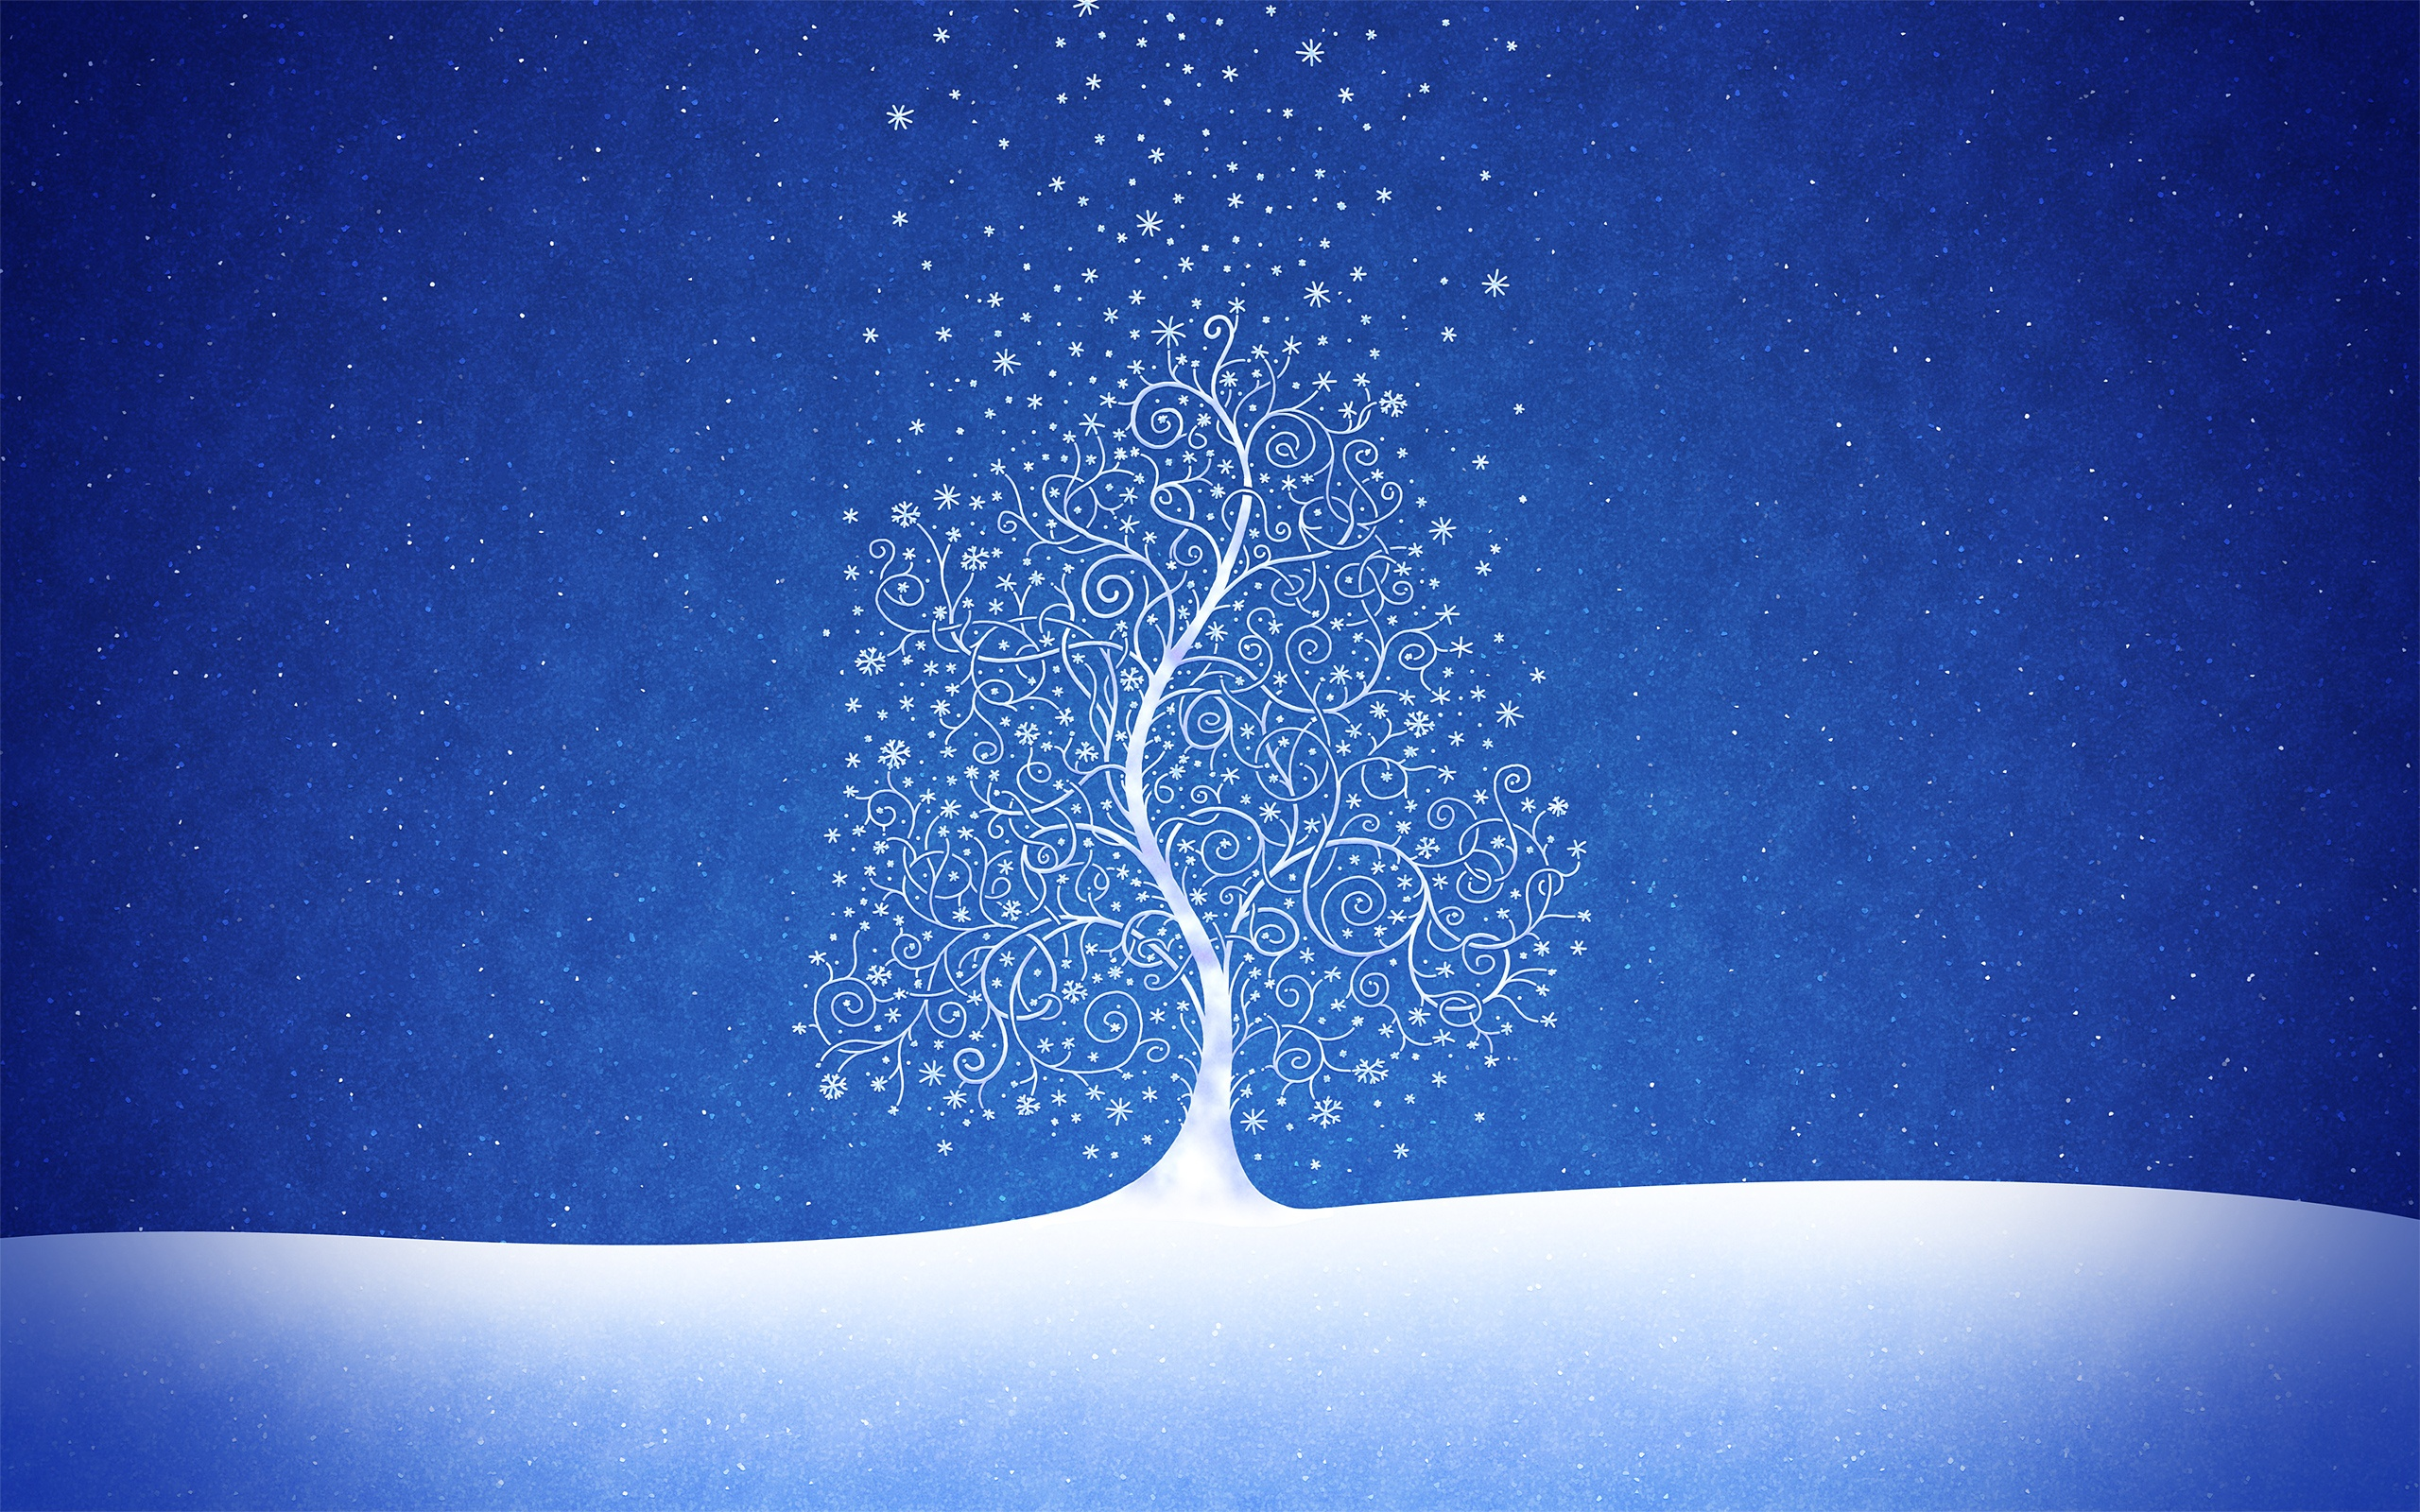 Snow Vector Ice Wallpaper Free Downloads